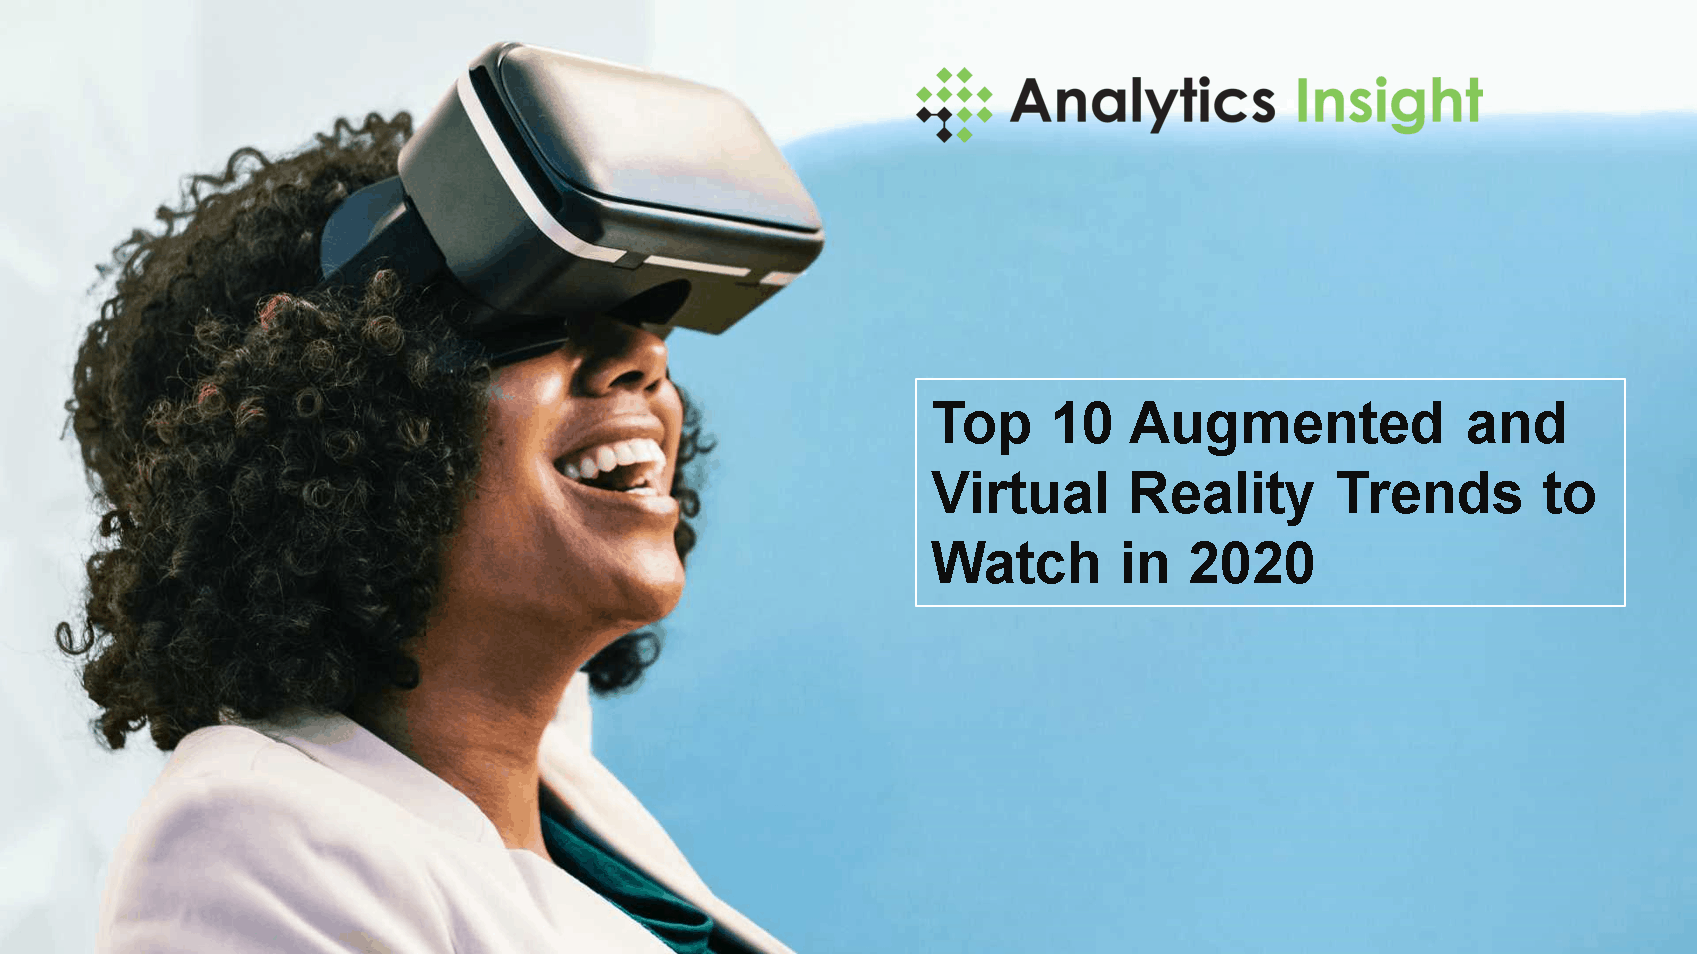 Augmented and Virtual Reality Trends